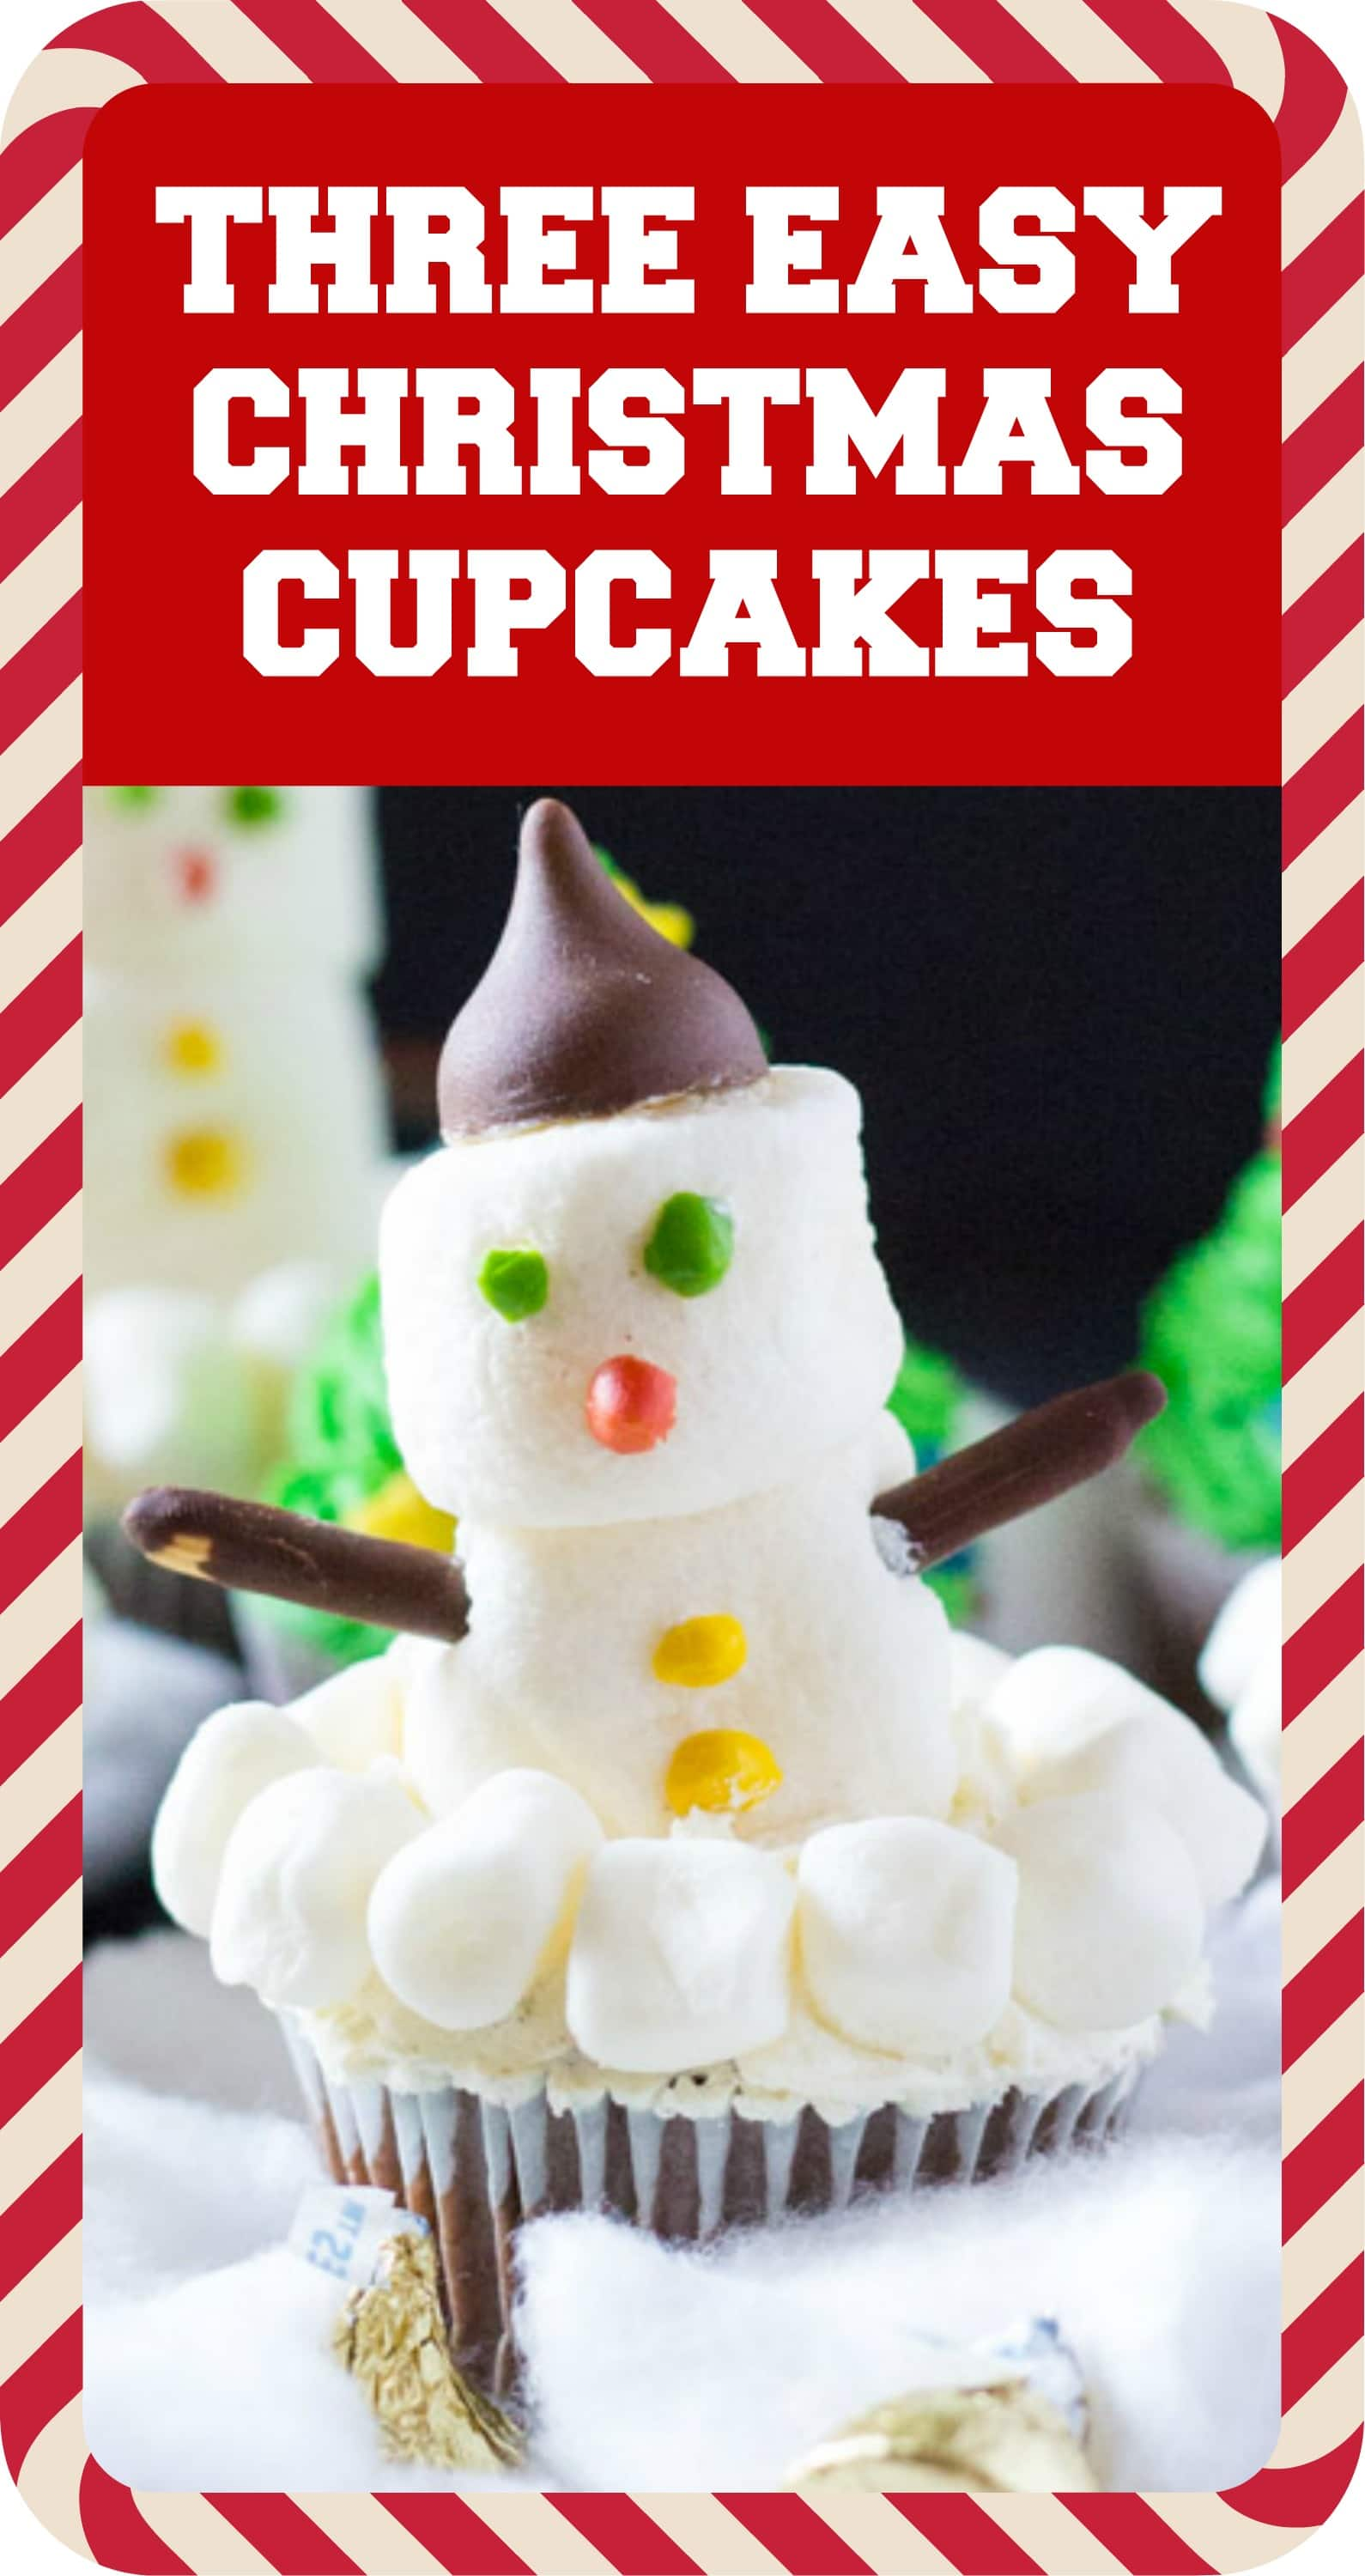 https://ikneadtoeat.com/wp-content/uploads/2016/11/Three-Easy-Christmas-Cupcakes-Tree-short-pin.jpg